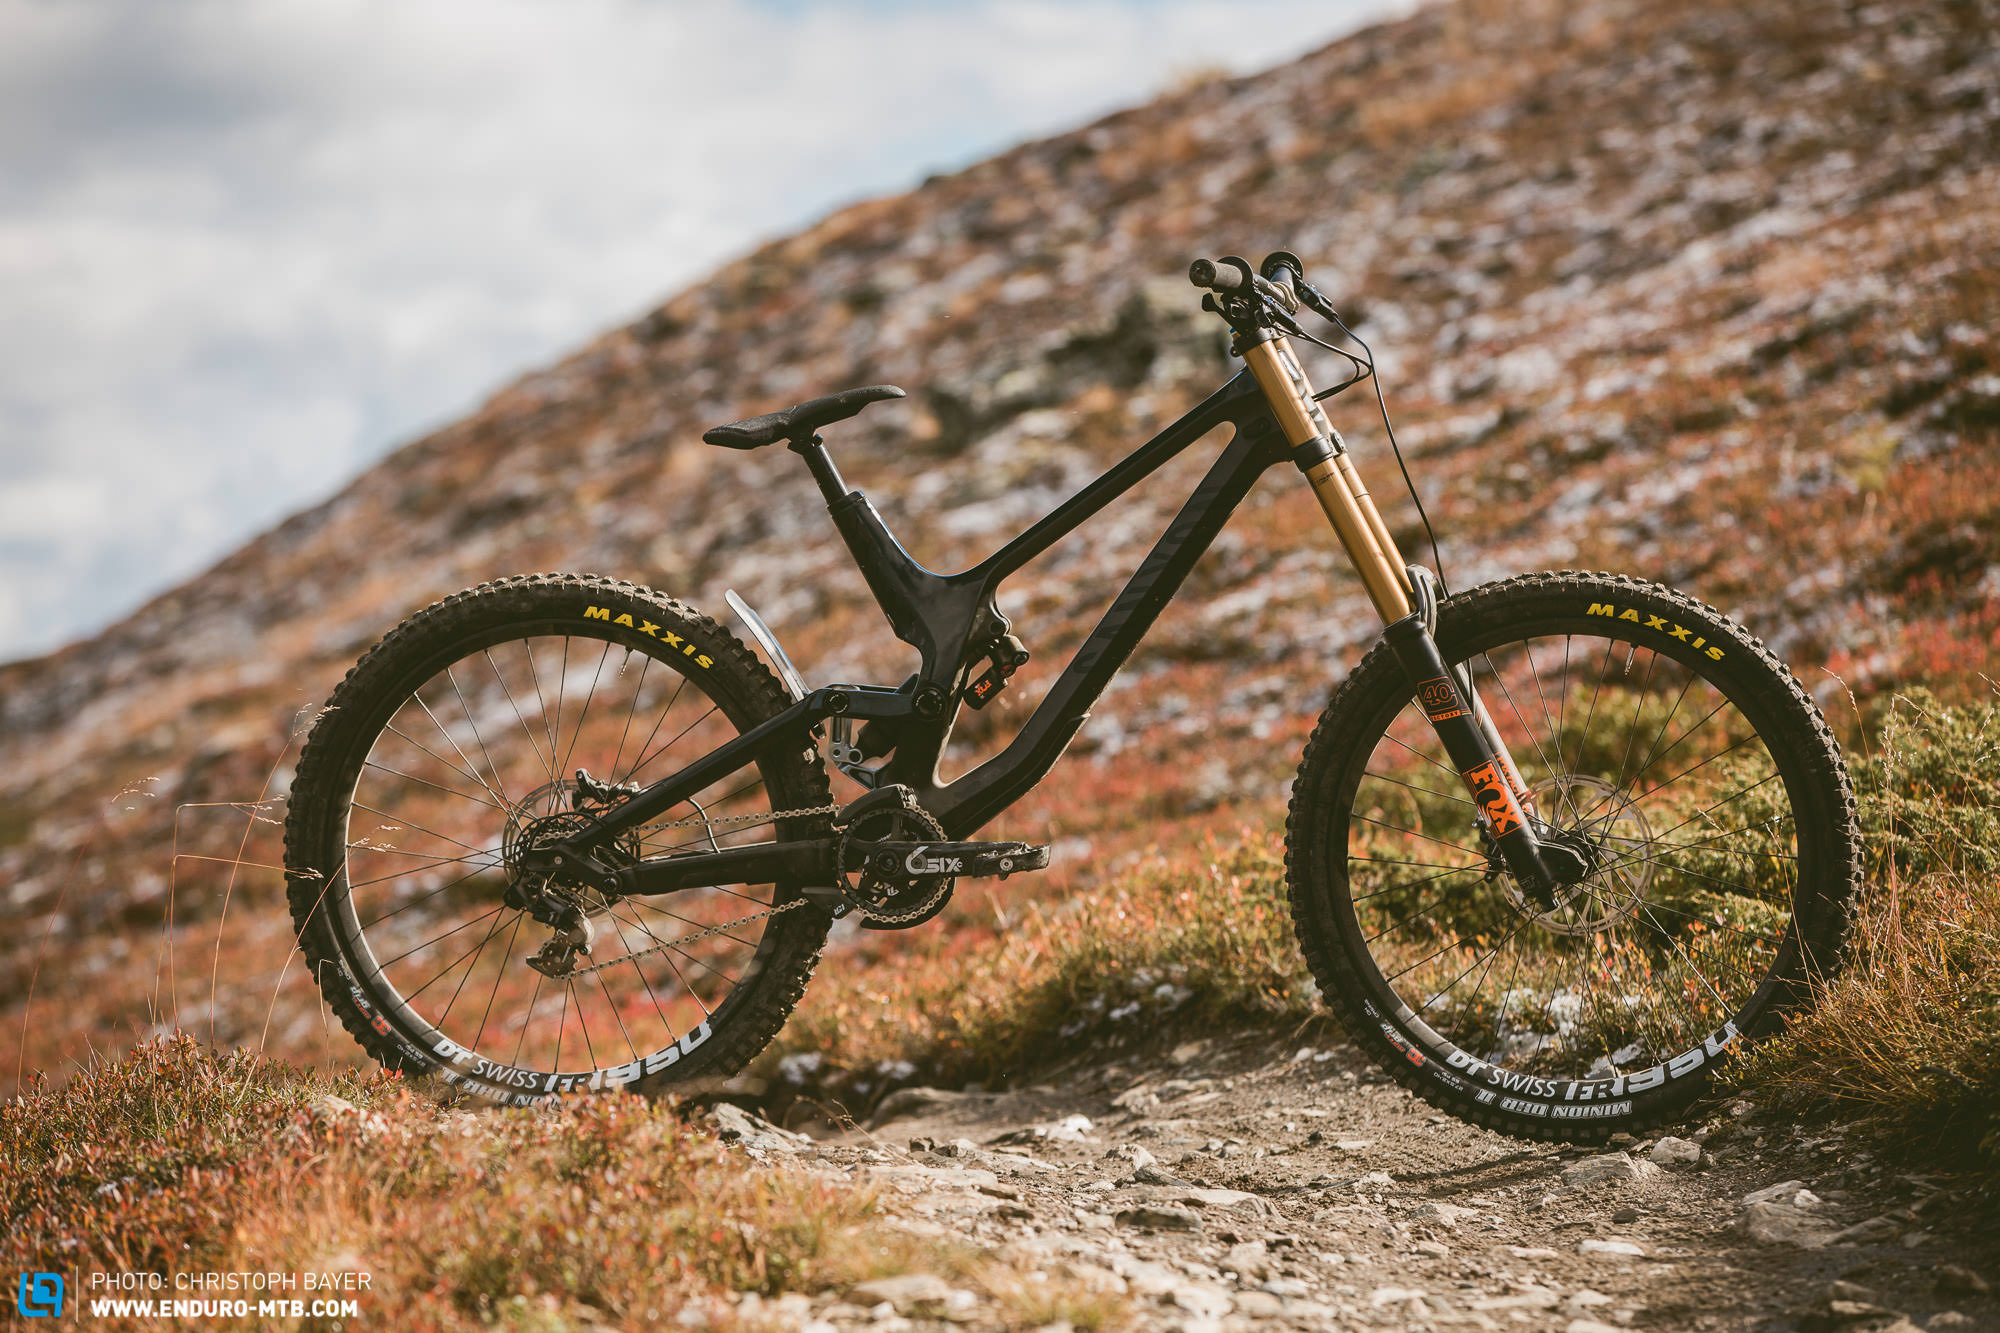 Canyon Sender CF 9 0 Review – When it's time to go big, grab